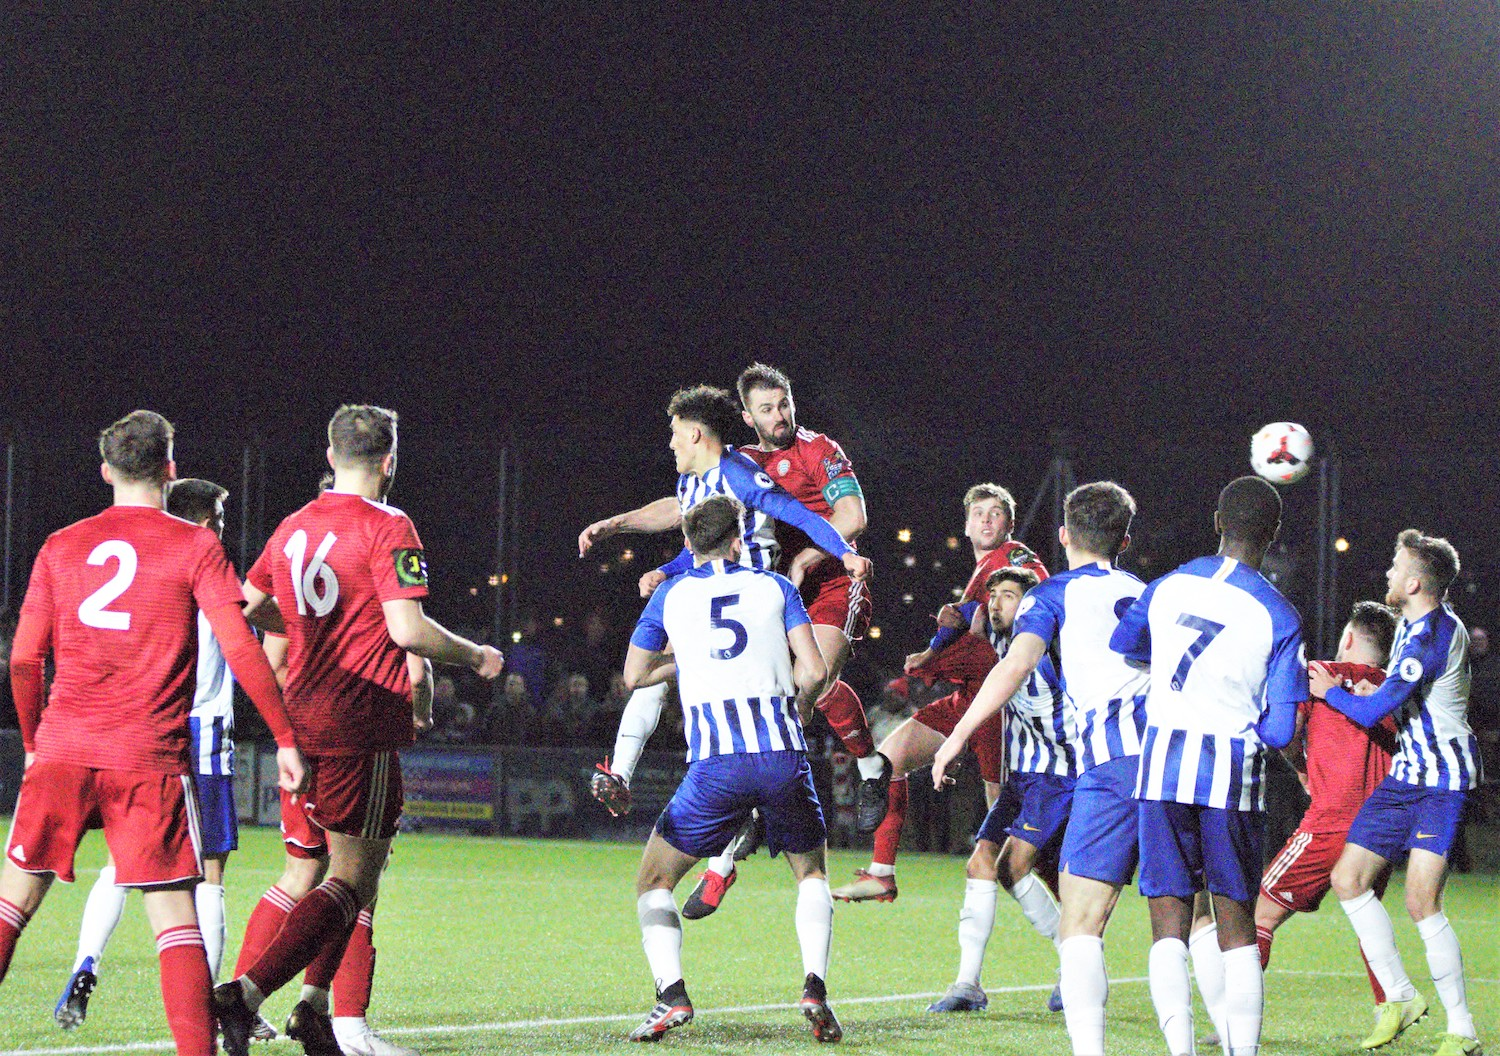 Read the full article - HIGHLIGHTS | 19/20: Brighton & Hove Albion [N] – Cup